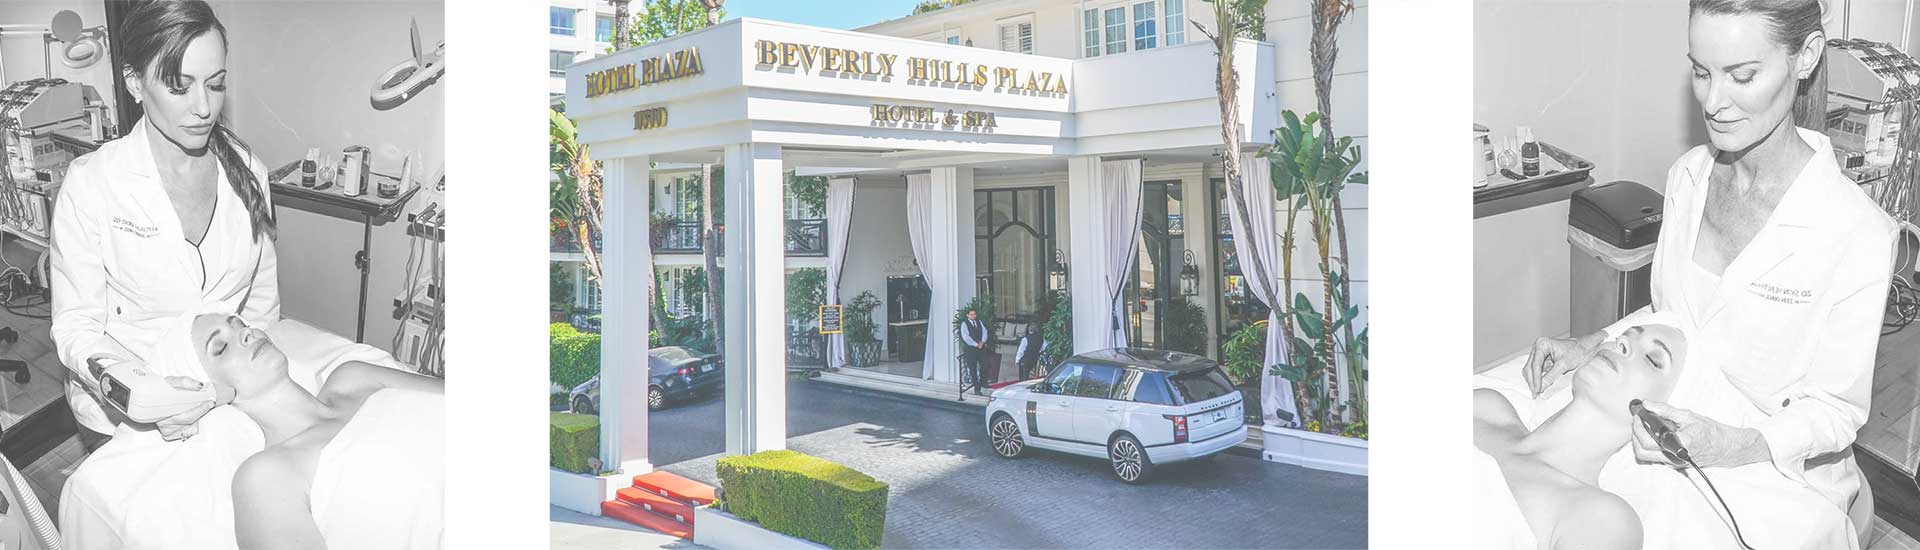 Beverly Hills Plaza Hotel Medi Spa Endorsments